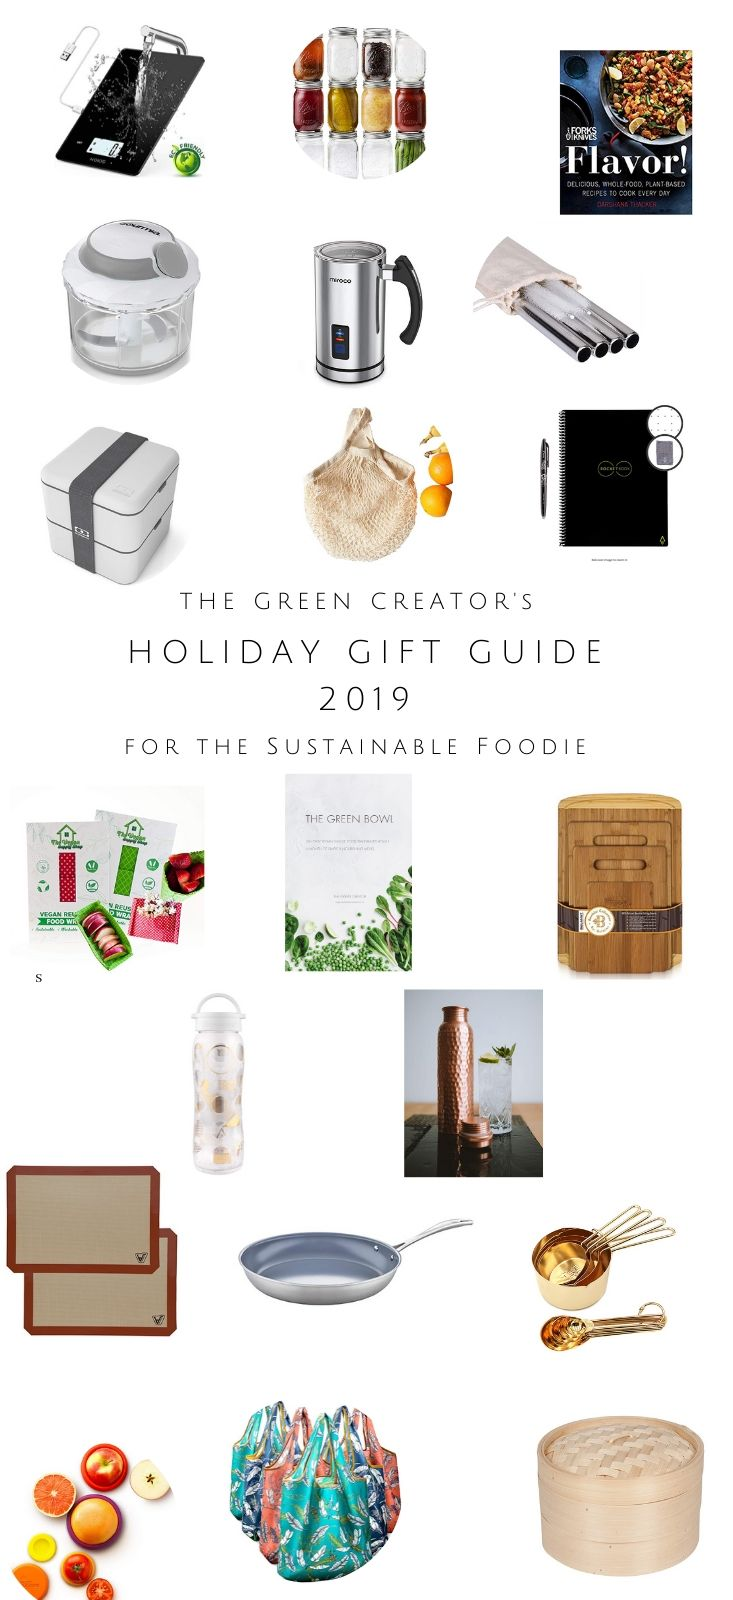 Holiday Gift Guide 2019 for the Sustainable Foodie